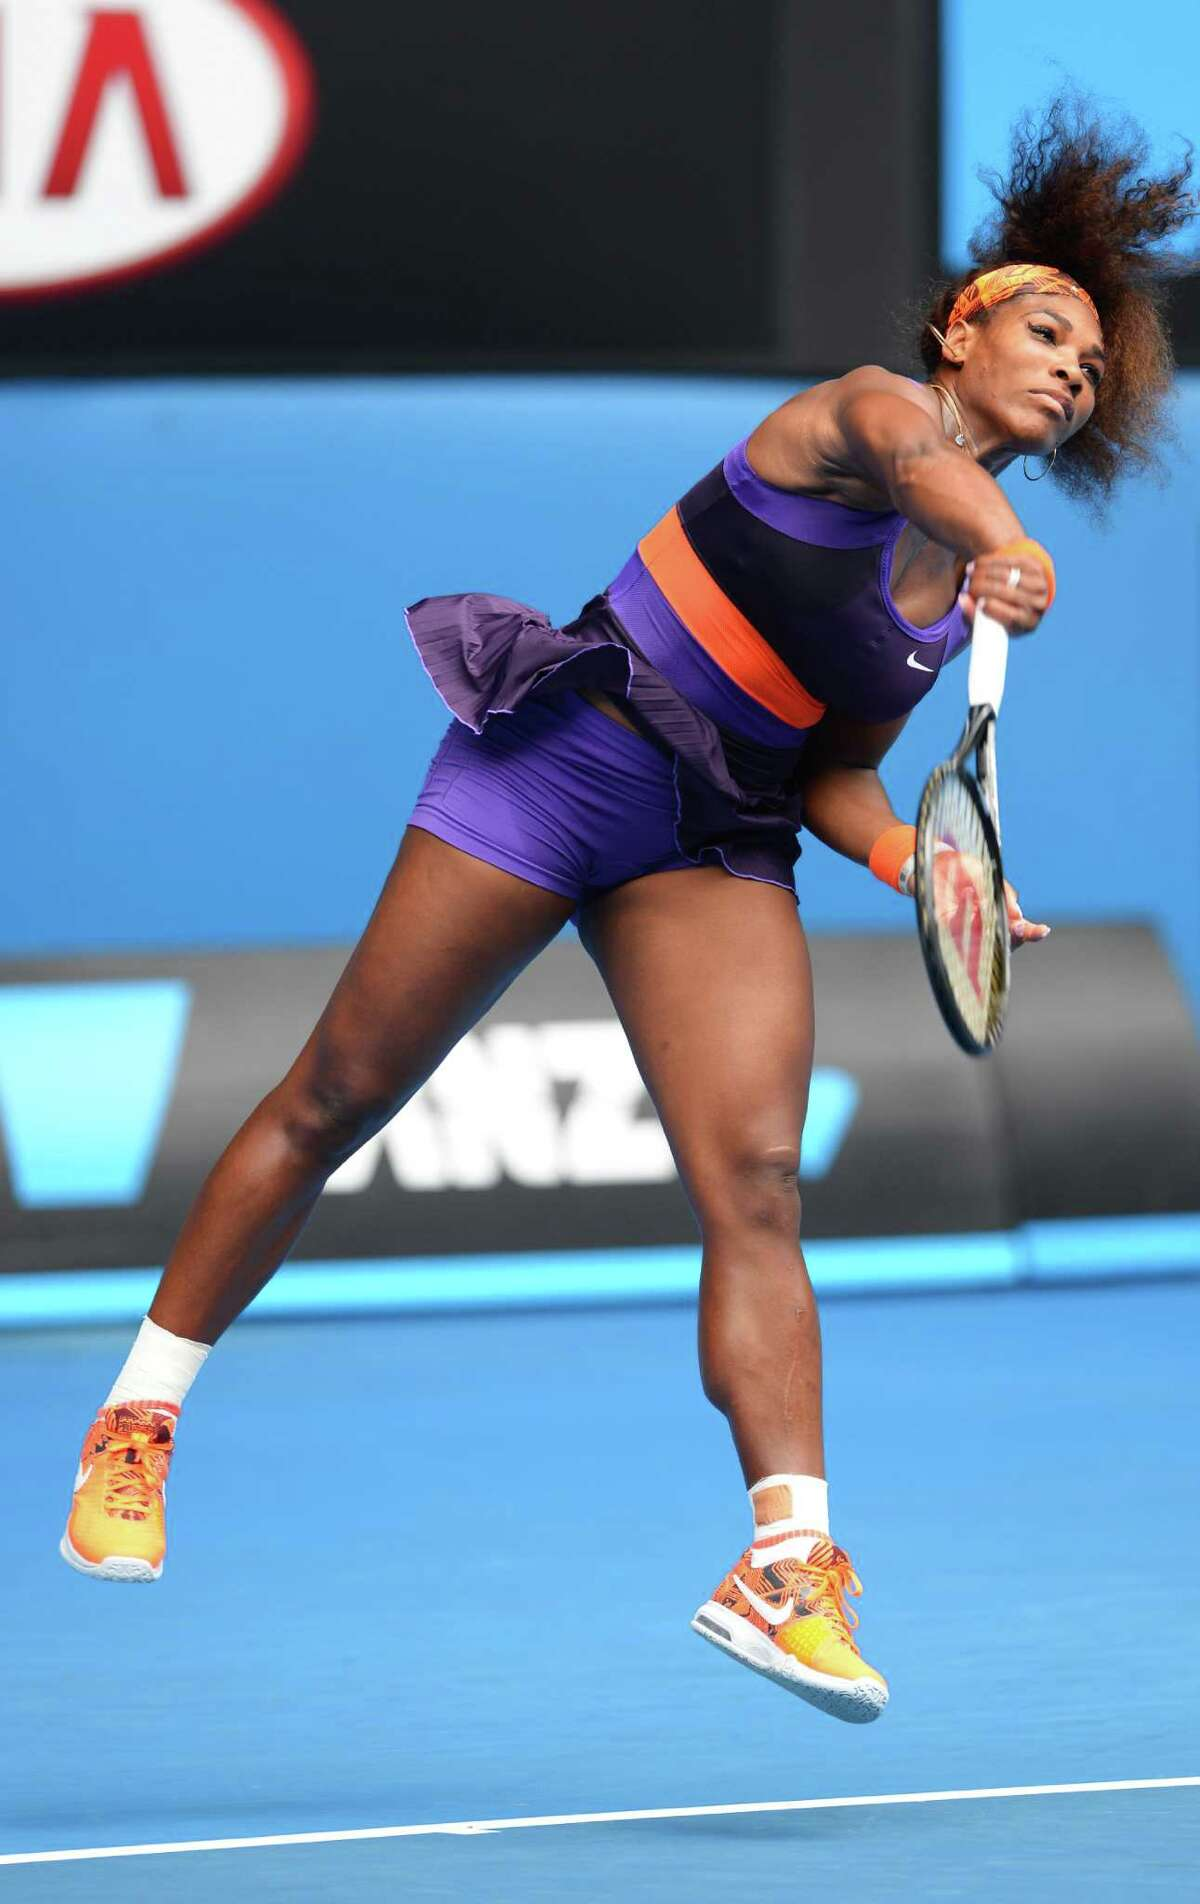 Serena Williams showed no ill effects from the fall she took Tuesday, beating Garbine Muguruza on Thursday in a second-round match.